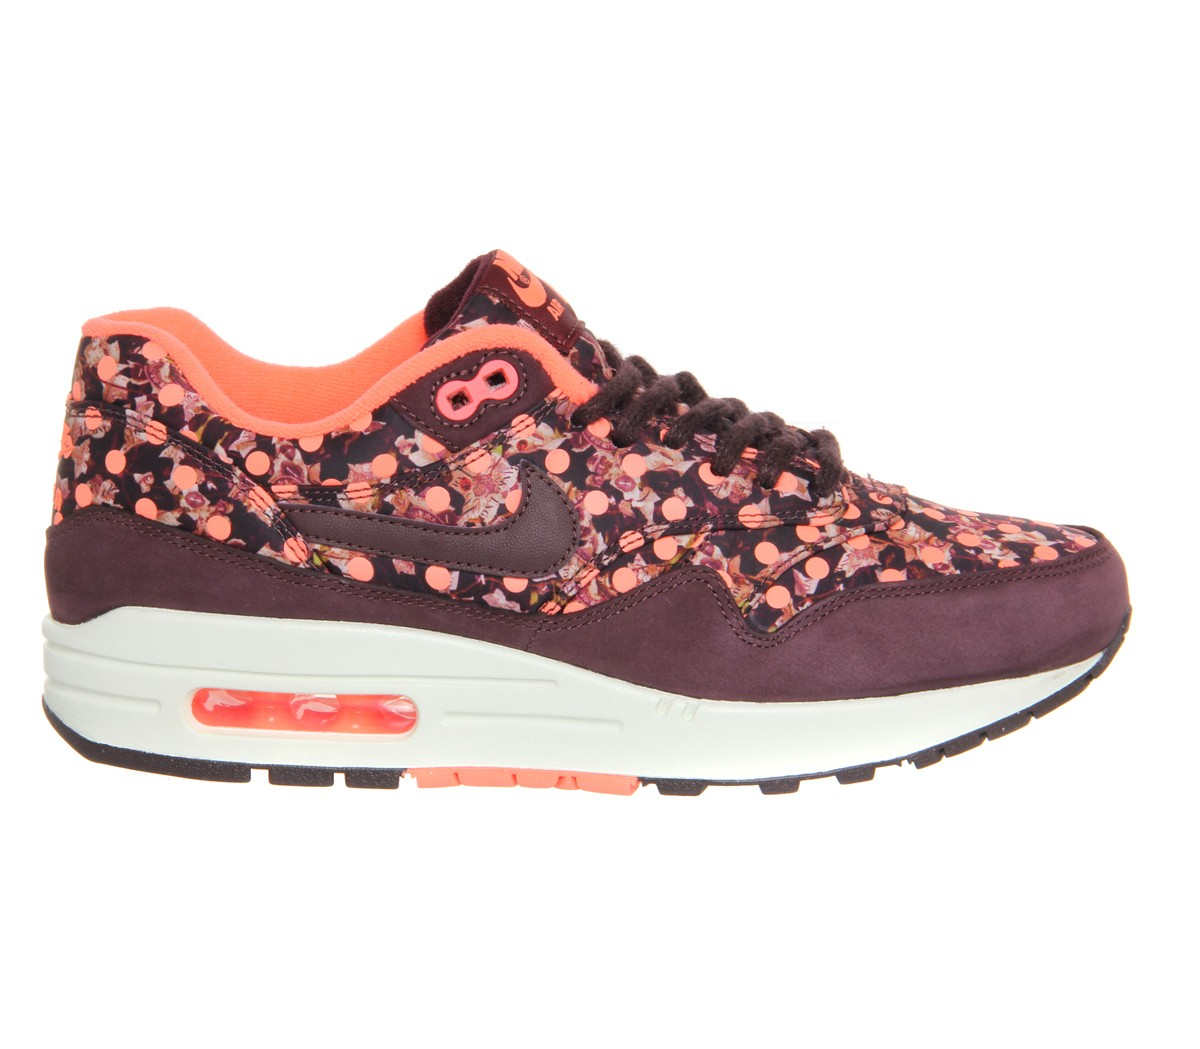 buy online 4ff7a 0be3d Nike WMNS Air Max 1 (I) Shoes Womens Liberty Deep Burgundy Bright